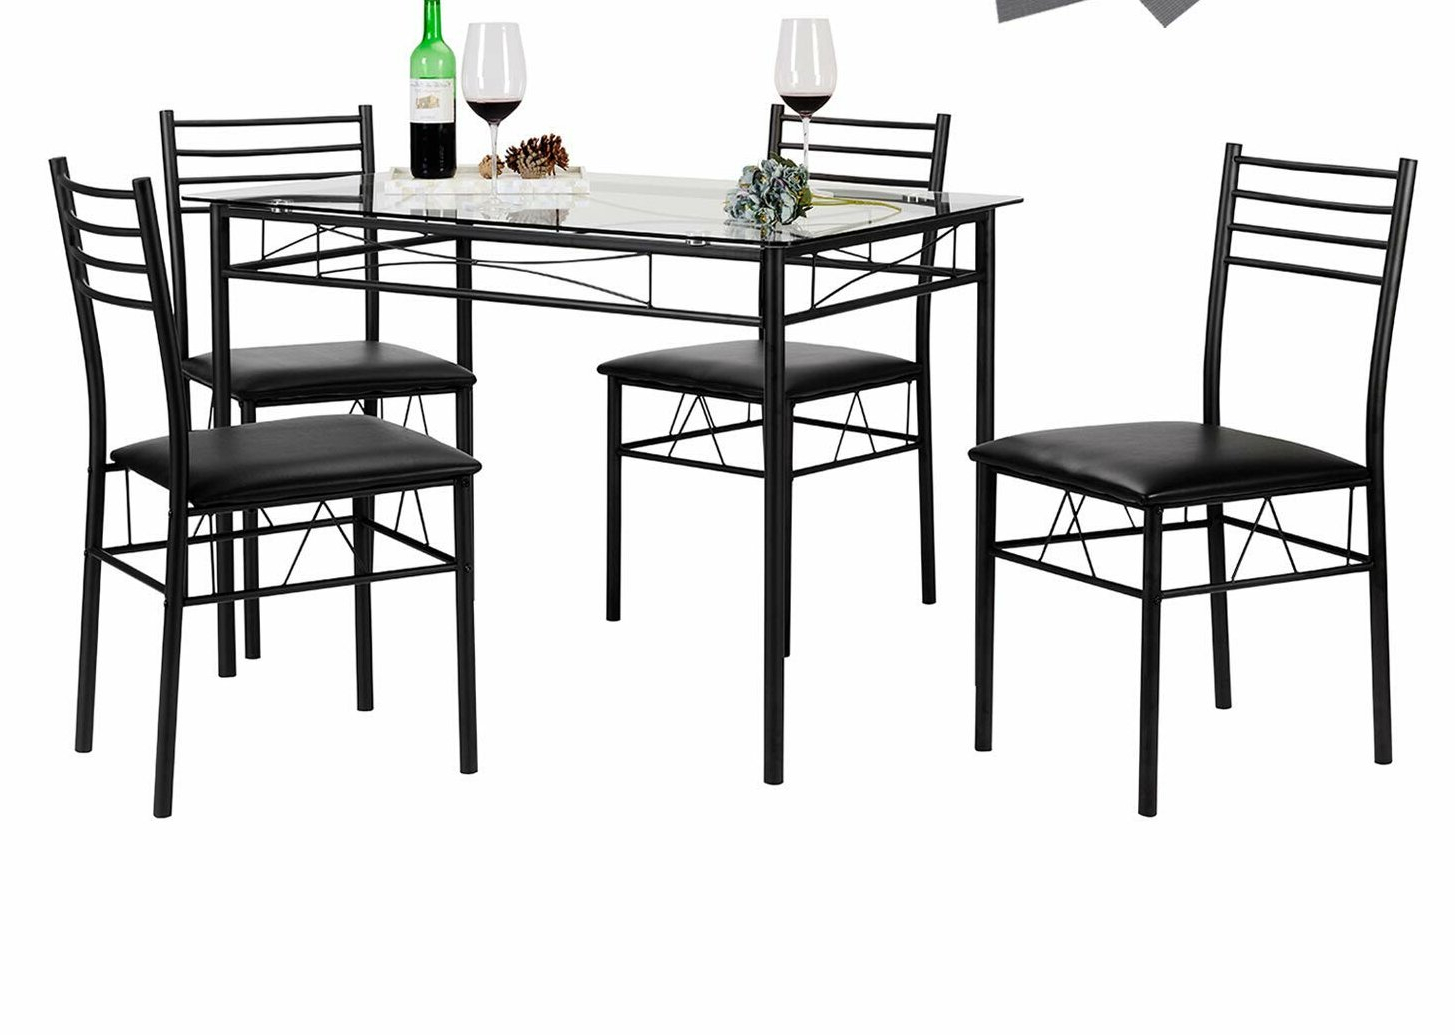 Ebern Designs Lightle 5 Piece Breakfast Nook Dining Set & Reviews for Favorite Liles 5 Piece Breakfast Nook Dining Sets